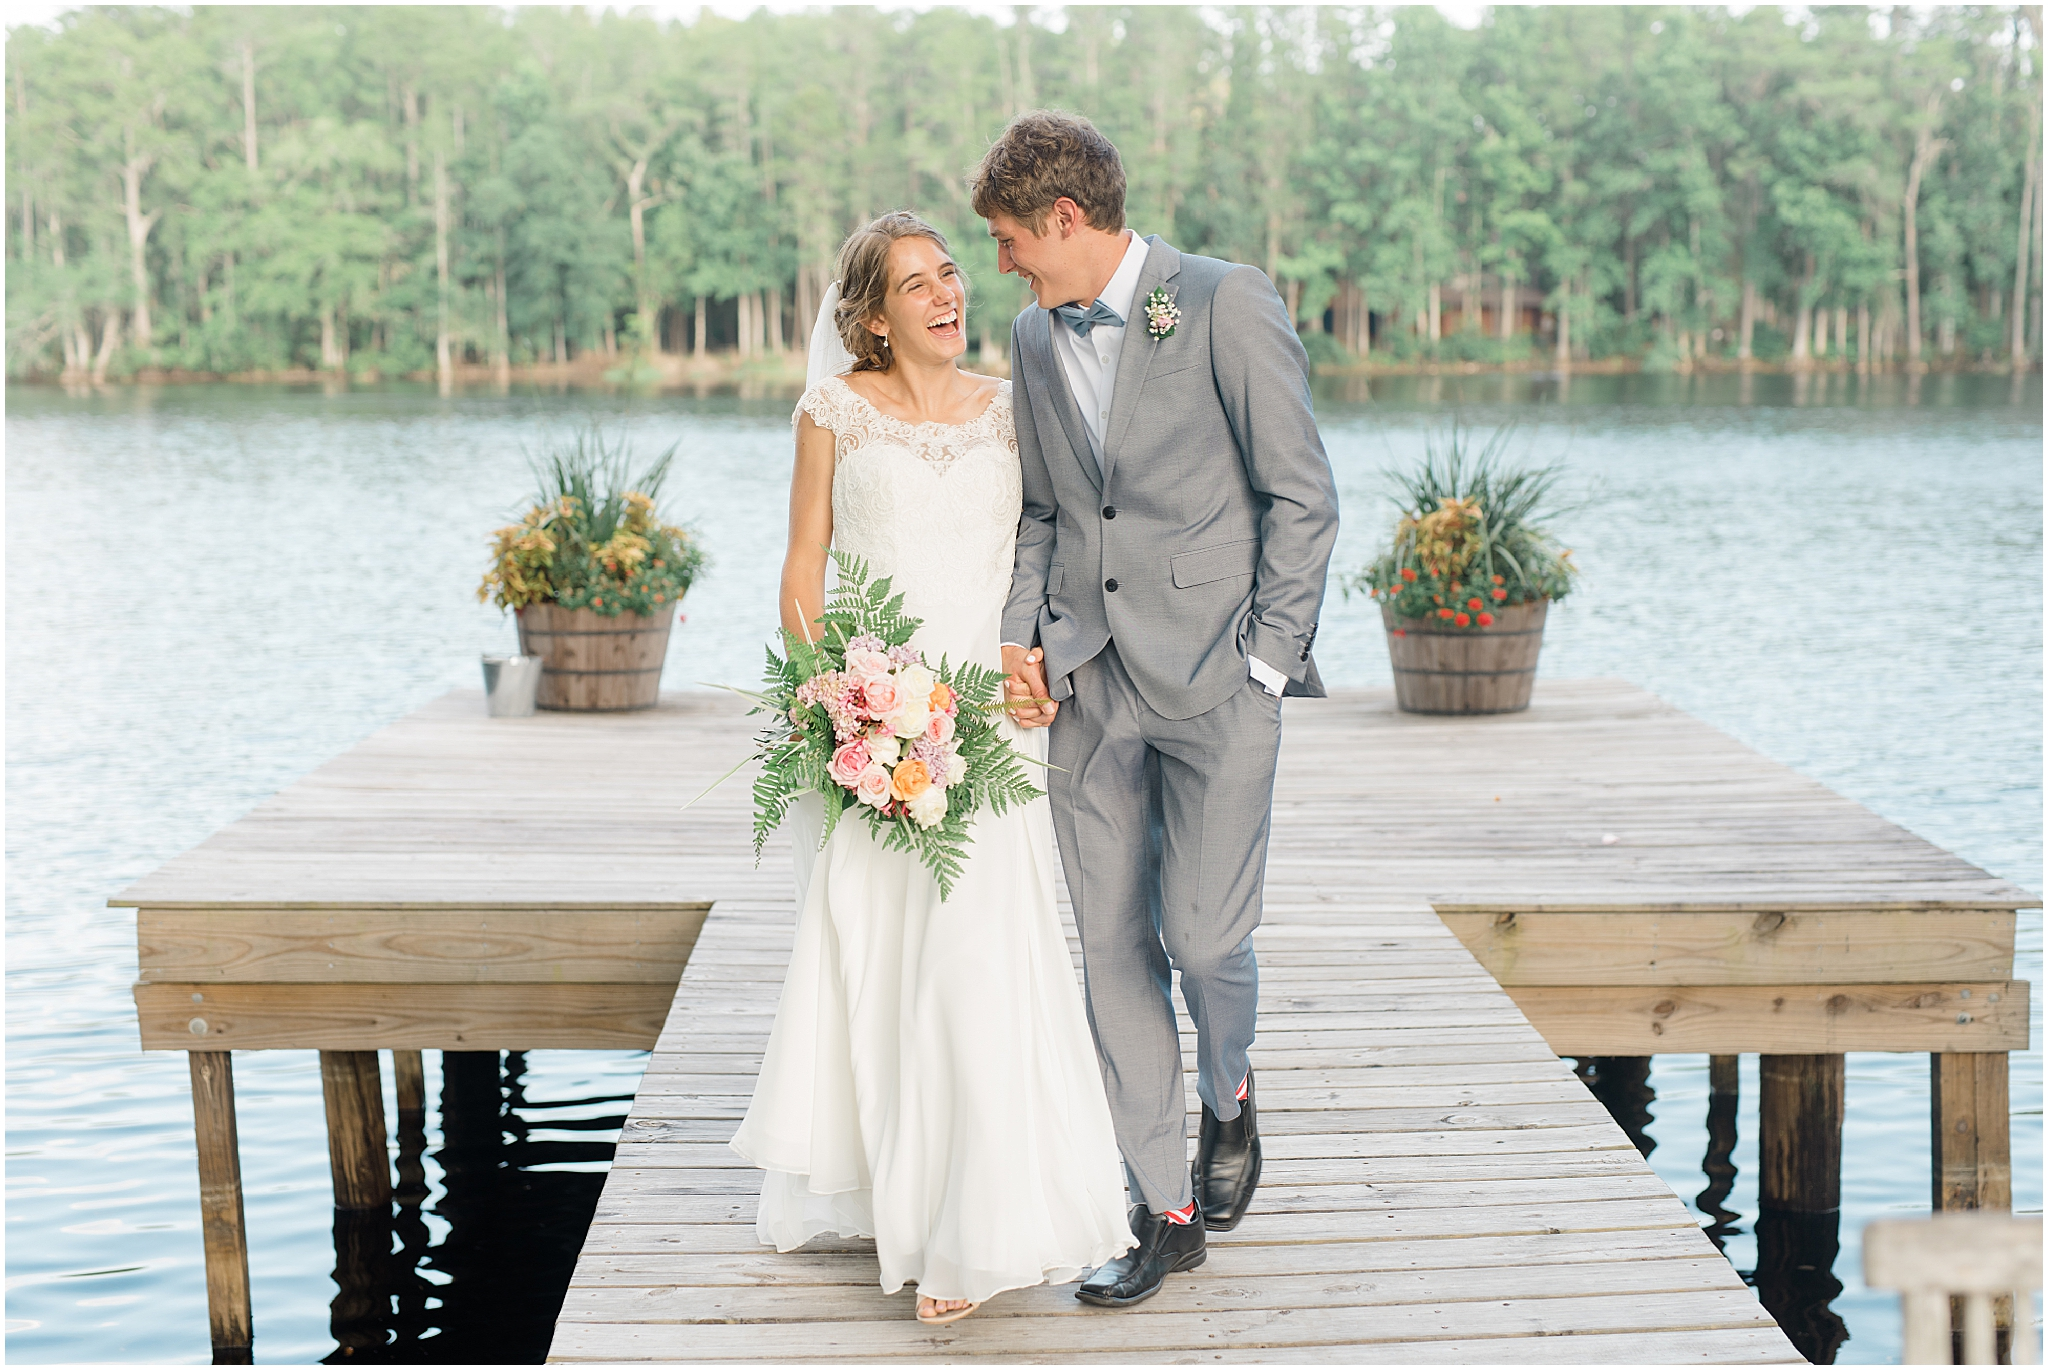 A Beautiful, Outdoor Odessa Florida Wedding by Olivia Rae Photography, Florida Wedding PhotographerA Beautiful, Outdoor Odessa Florida Wedding by Olivia Rae Photography, Florida Wedding Photographer